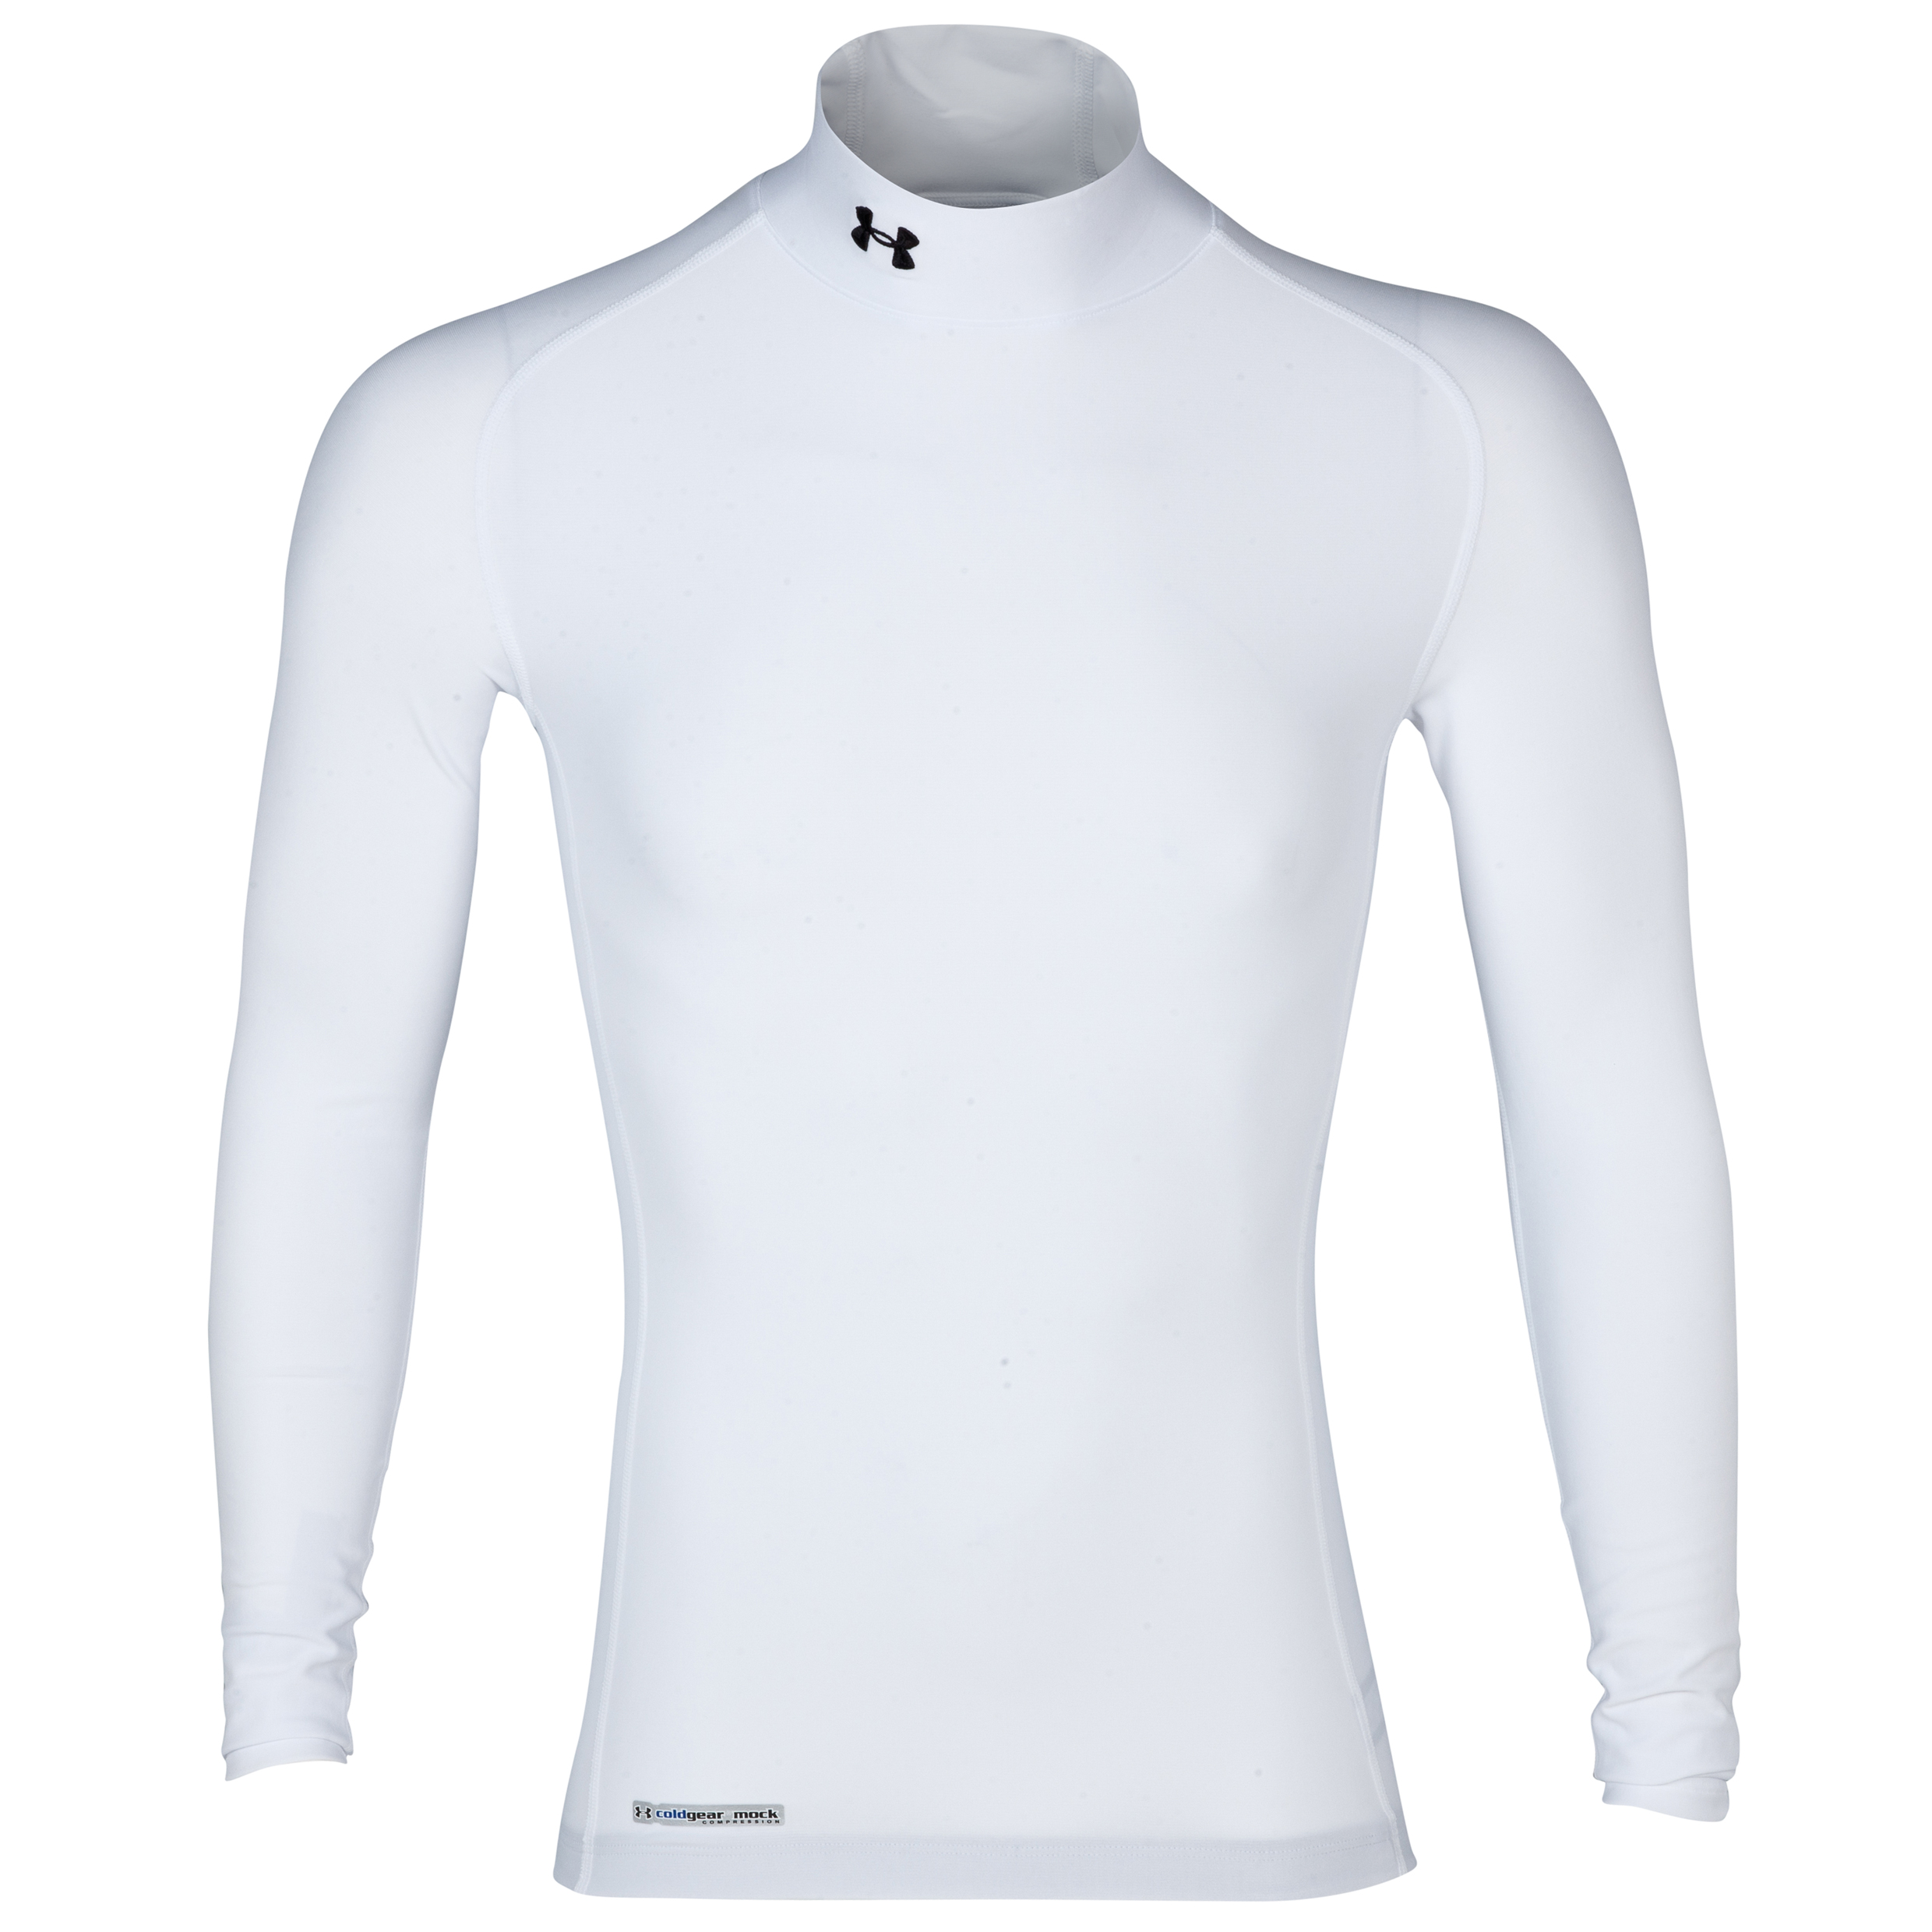 Under Armour Evo Coldgear mock Base Layer Top - Long Sleeve White